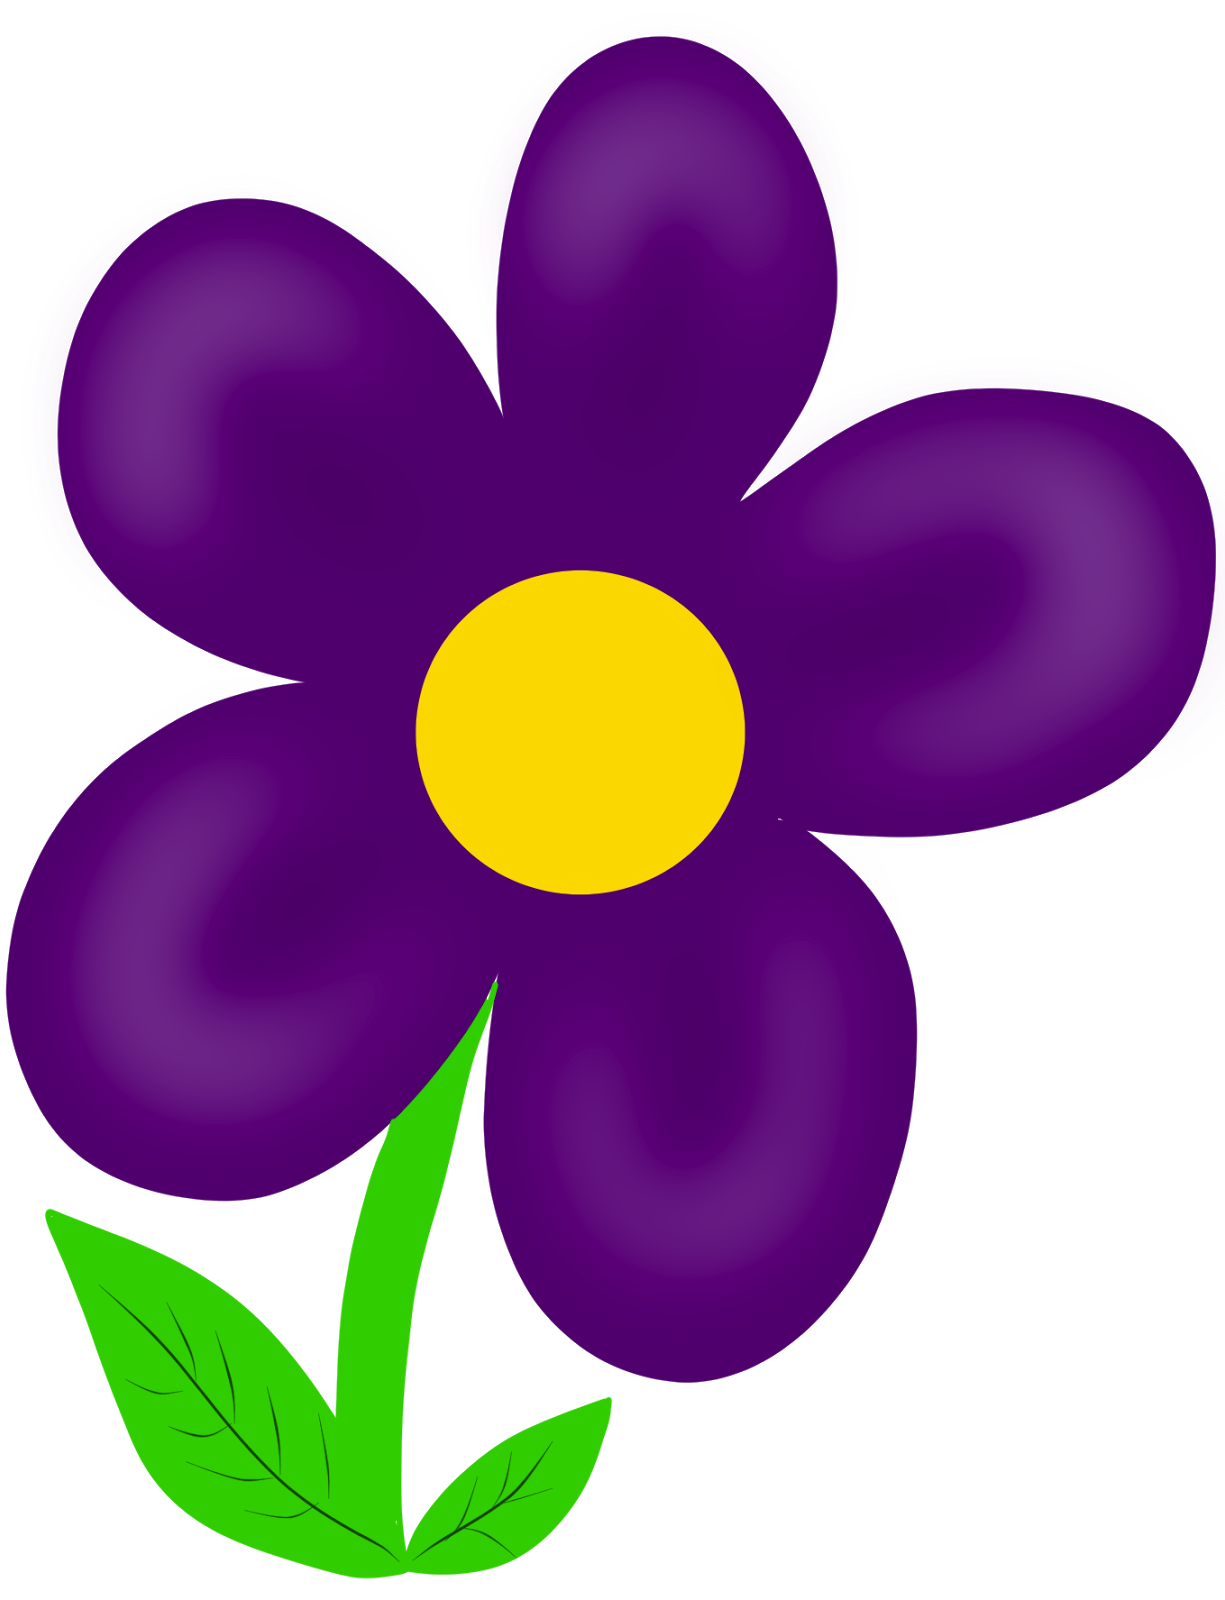 April flowers clip art clipart library stock April flower clipart - ClipartFest clipart library stock